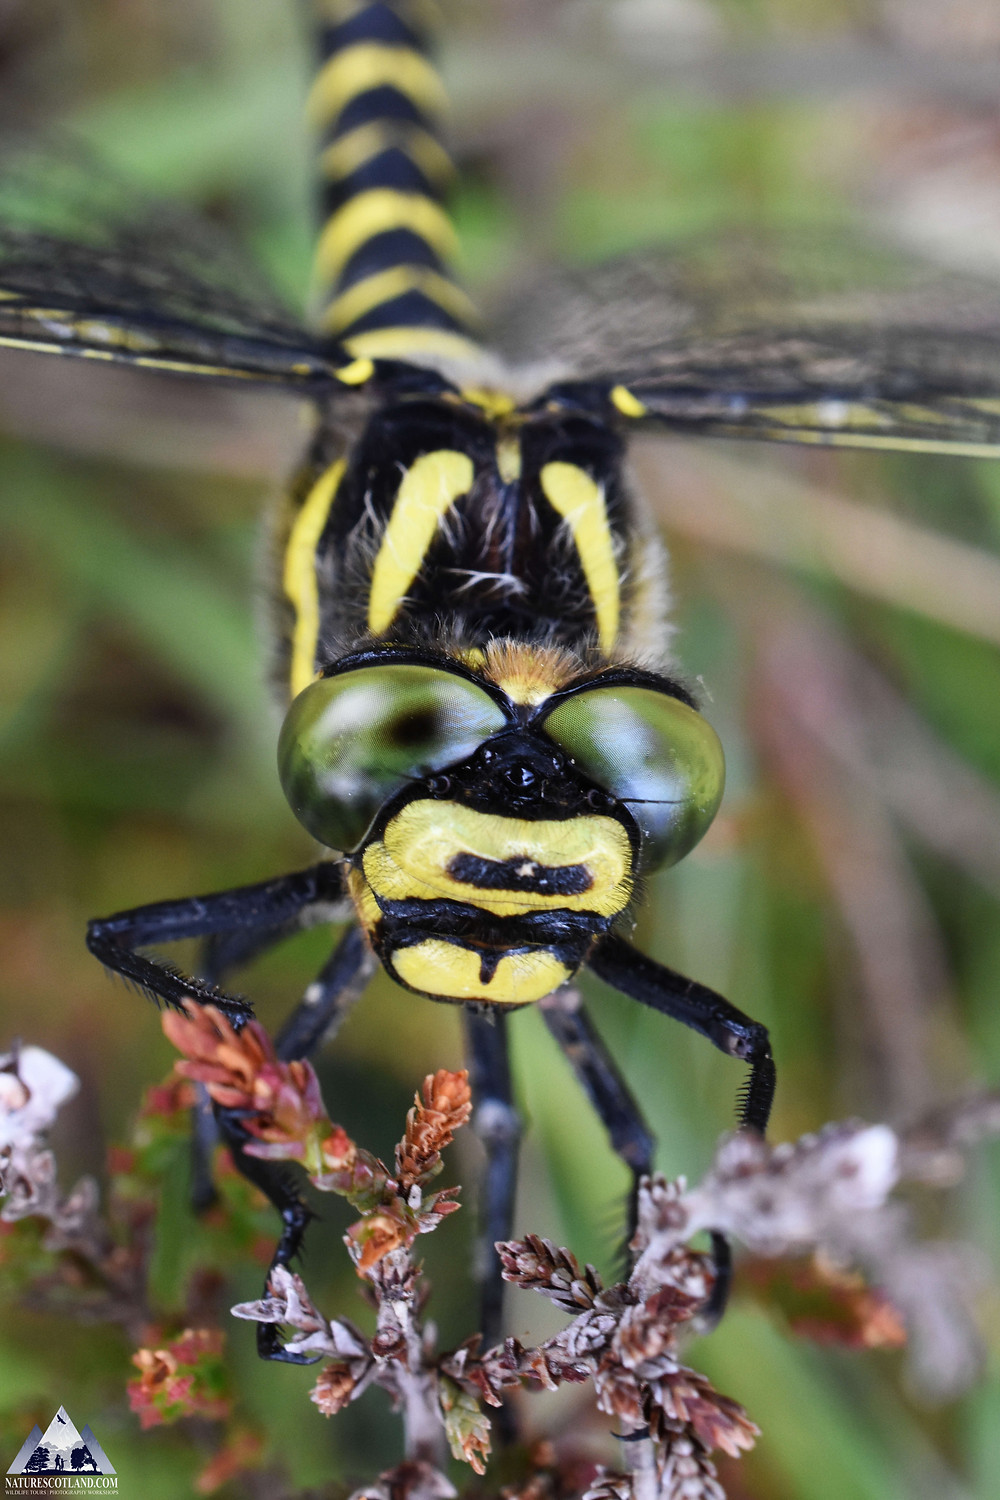 dragonfly, mull, isle of mull, golden-ringed dragonfly, wildlife,